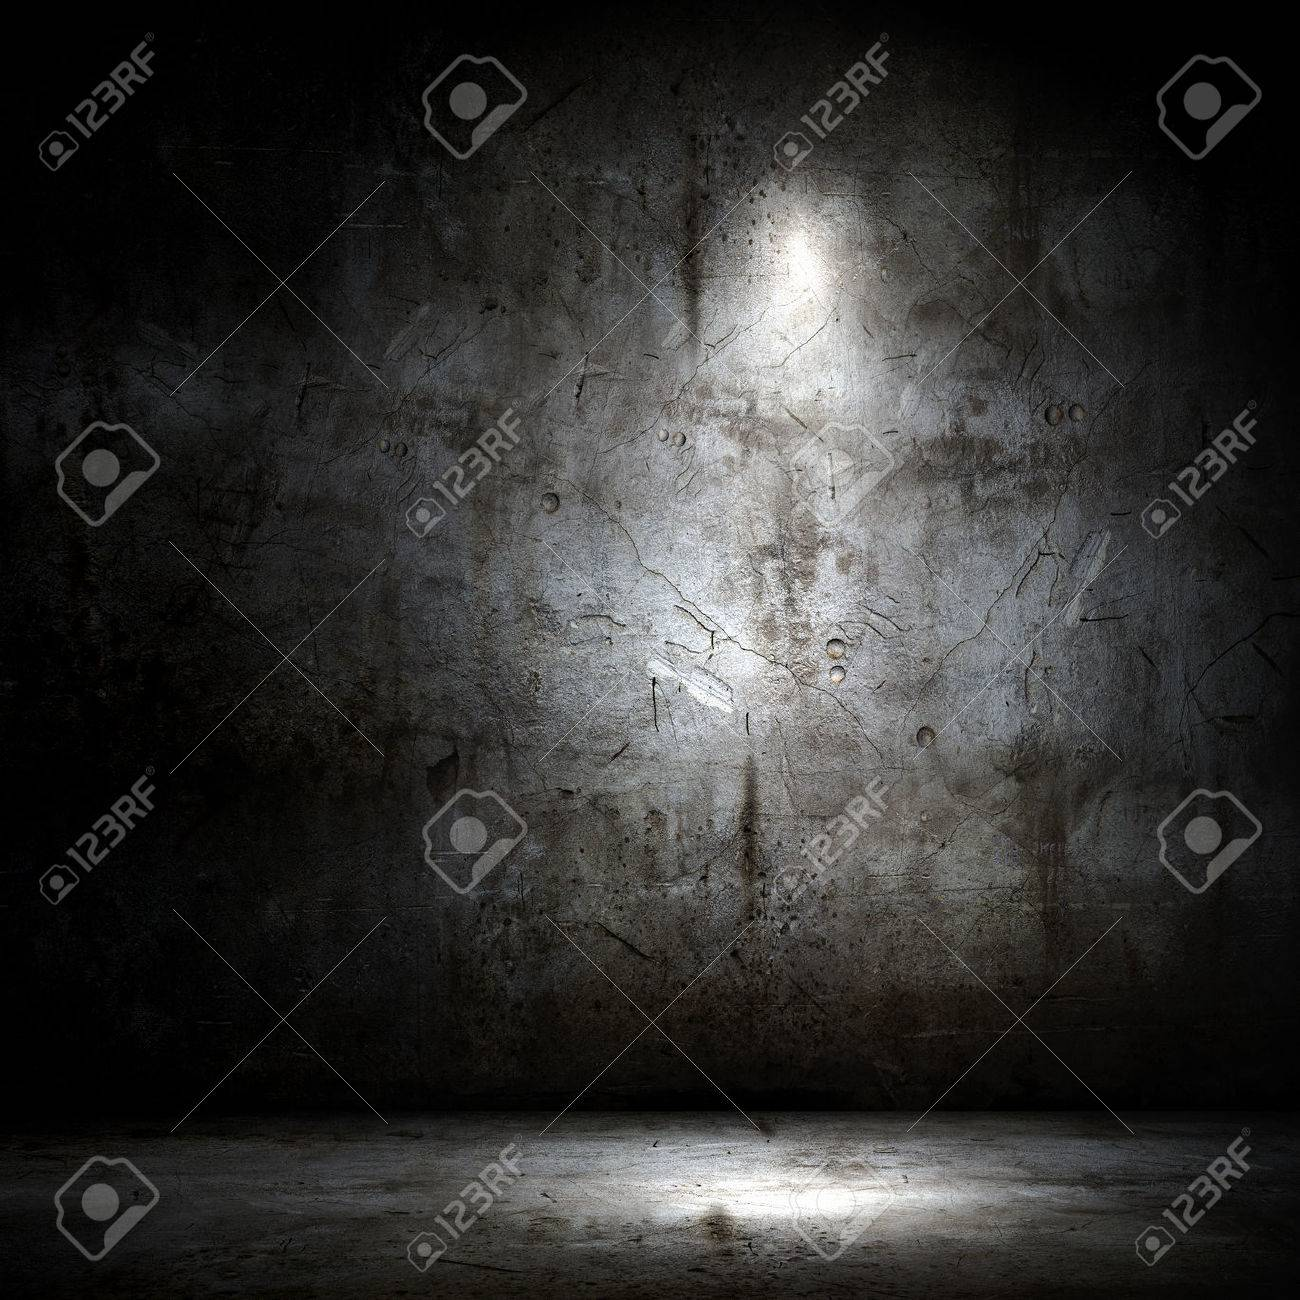 Dark bedroom background dark spotlight room background - Dark Wall Studio Background Image Of Dark Wall With Light Spot